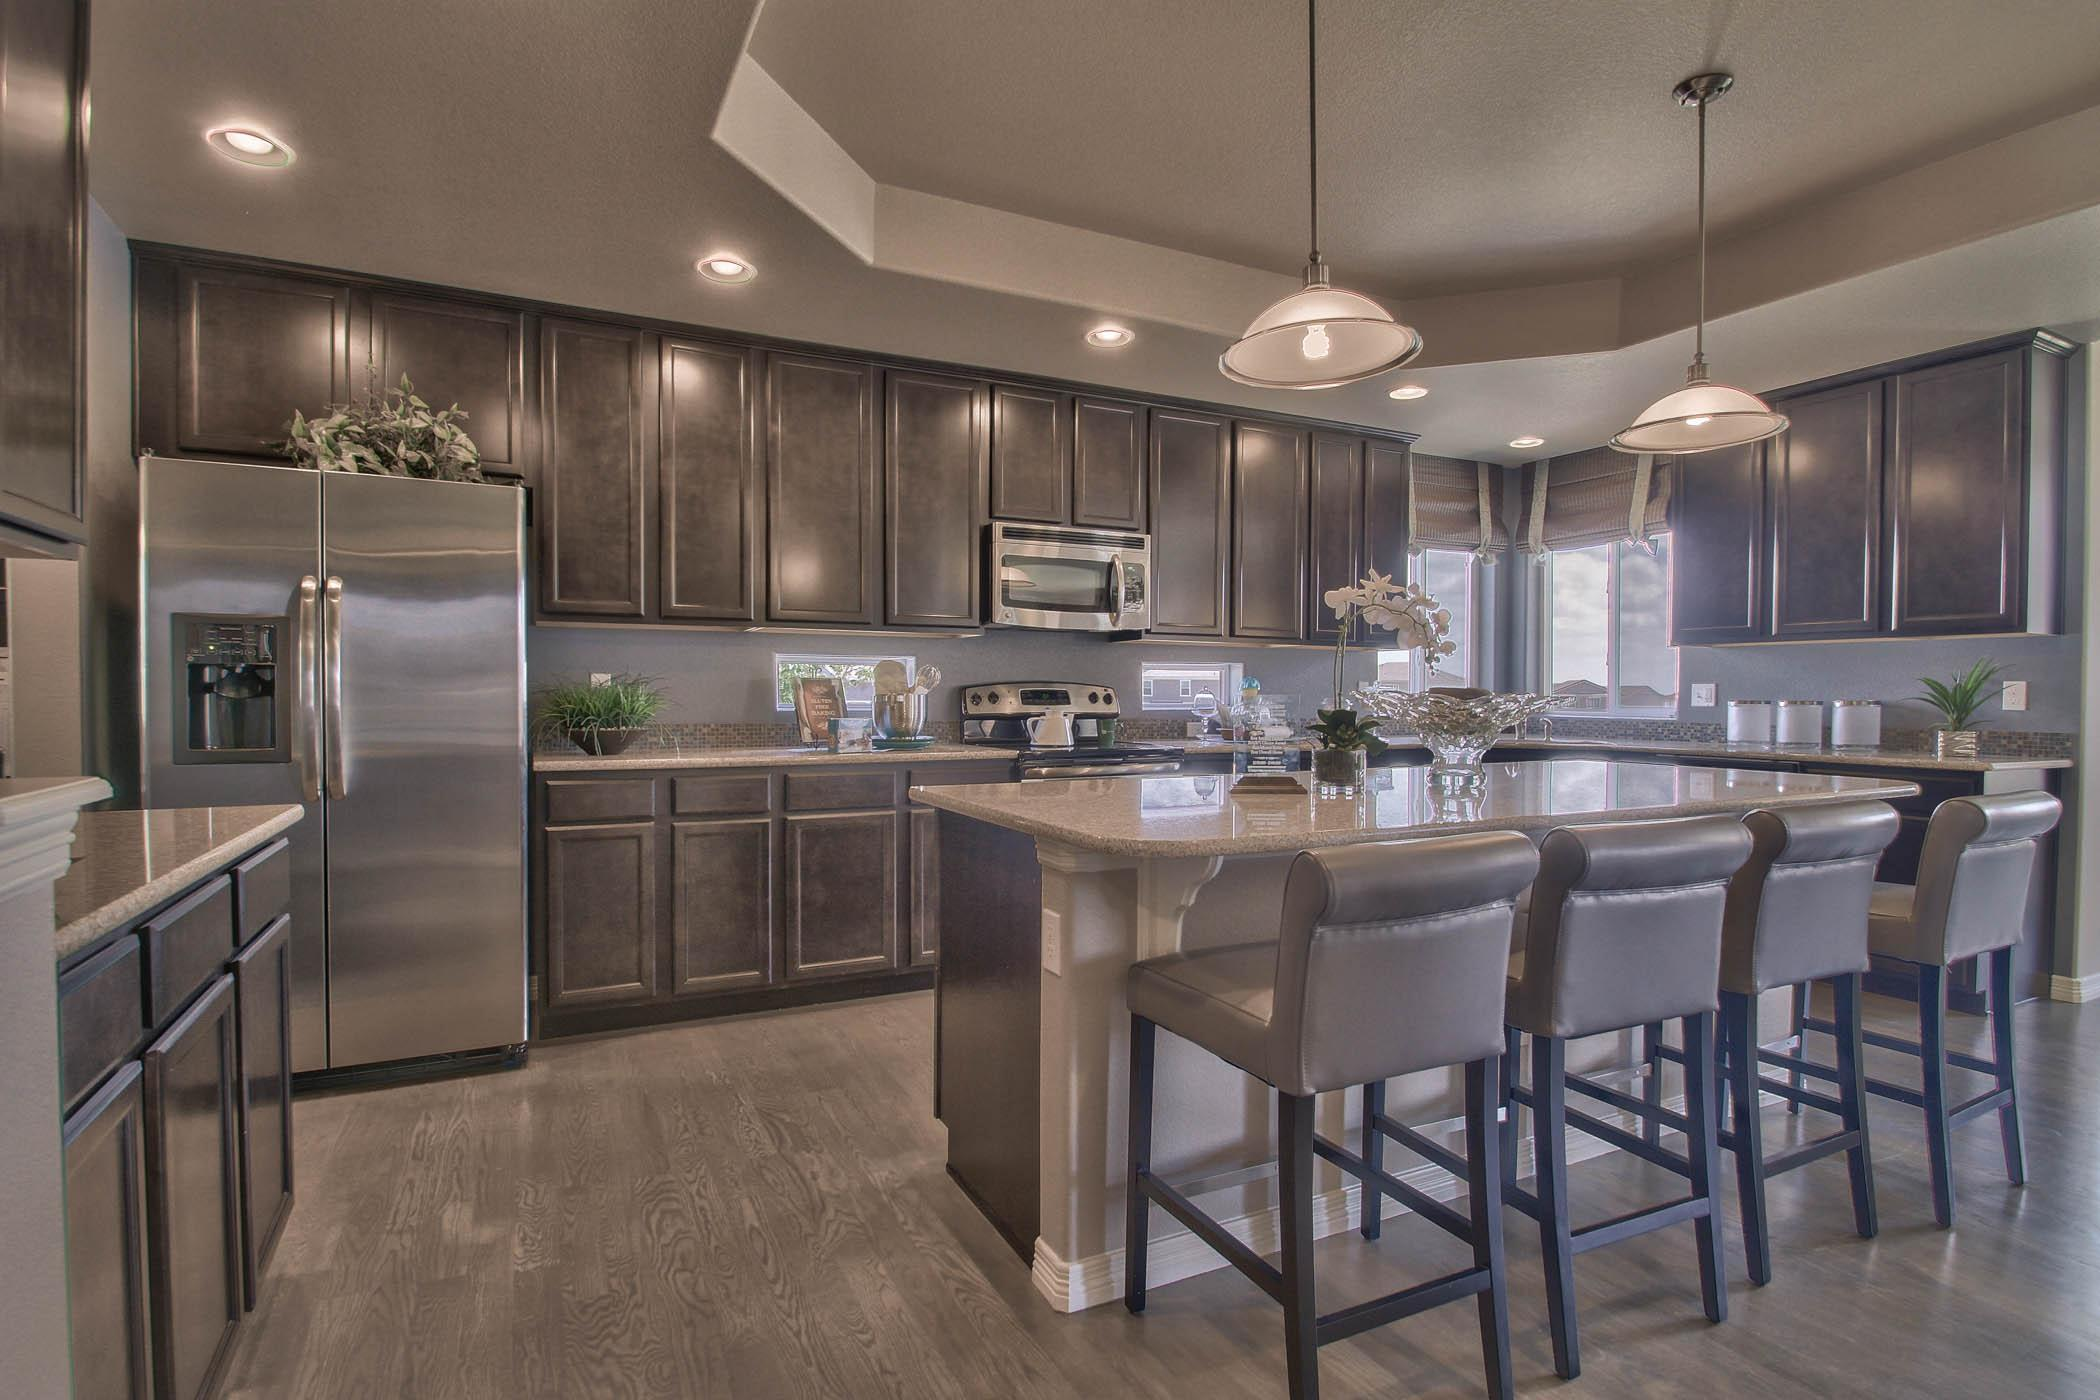 Kitchen featured in the Pikes Peak - Upper Level Master (Unfinished Basement) By Reunion Homes